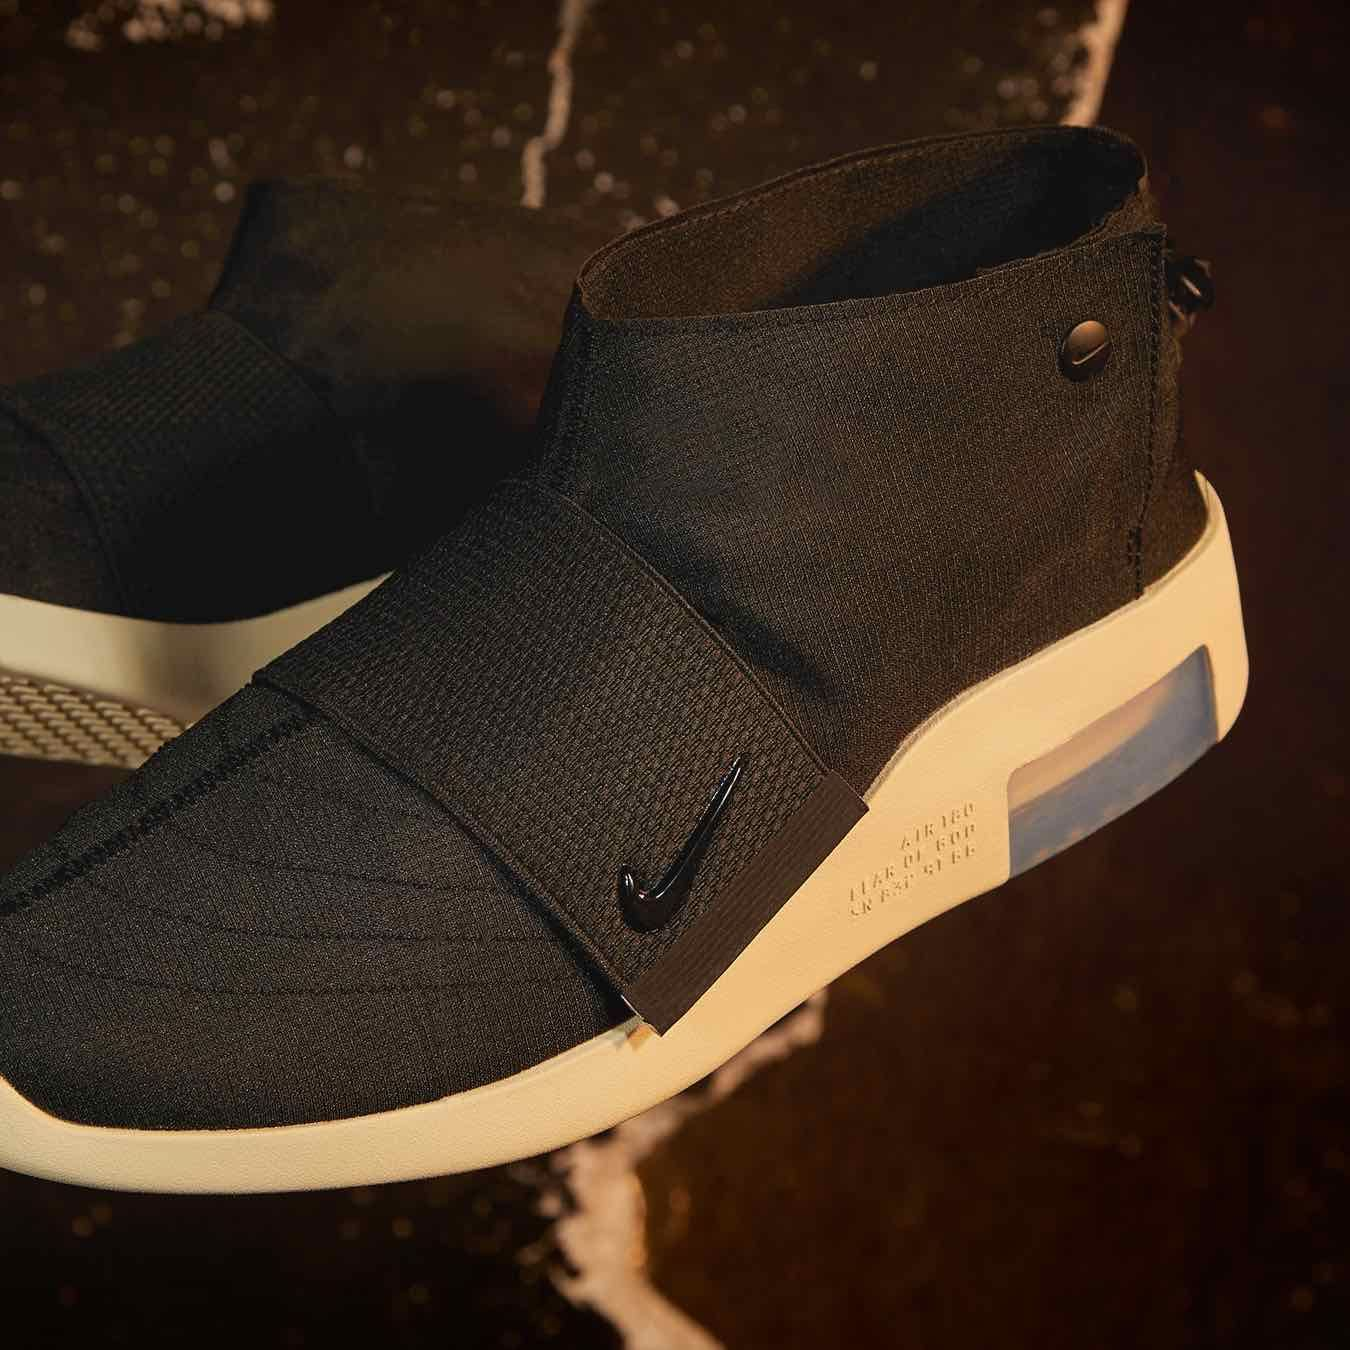 buque de vapor Género contraste  Release Date : May 17, 2019 Nike Air Fear of God Moc Black / Fossil  https://isds.co/sc/AT8086-002 Credit : END. Clothing — #nike #fearofgod  #sneakerhead …